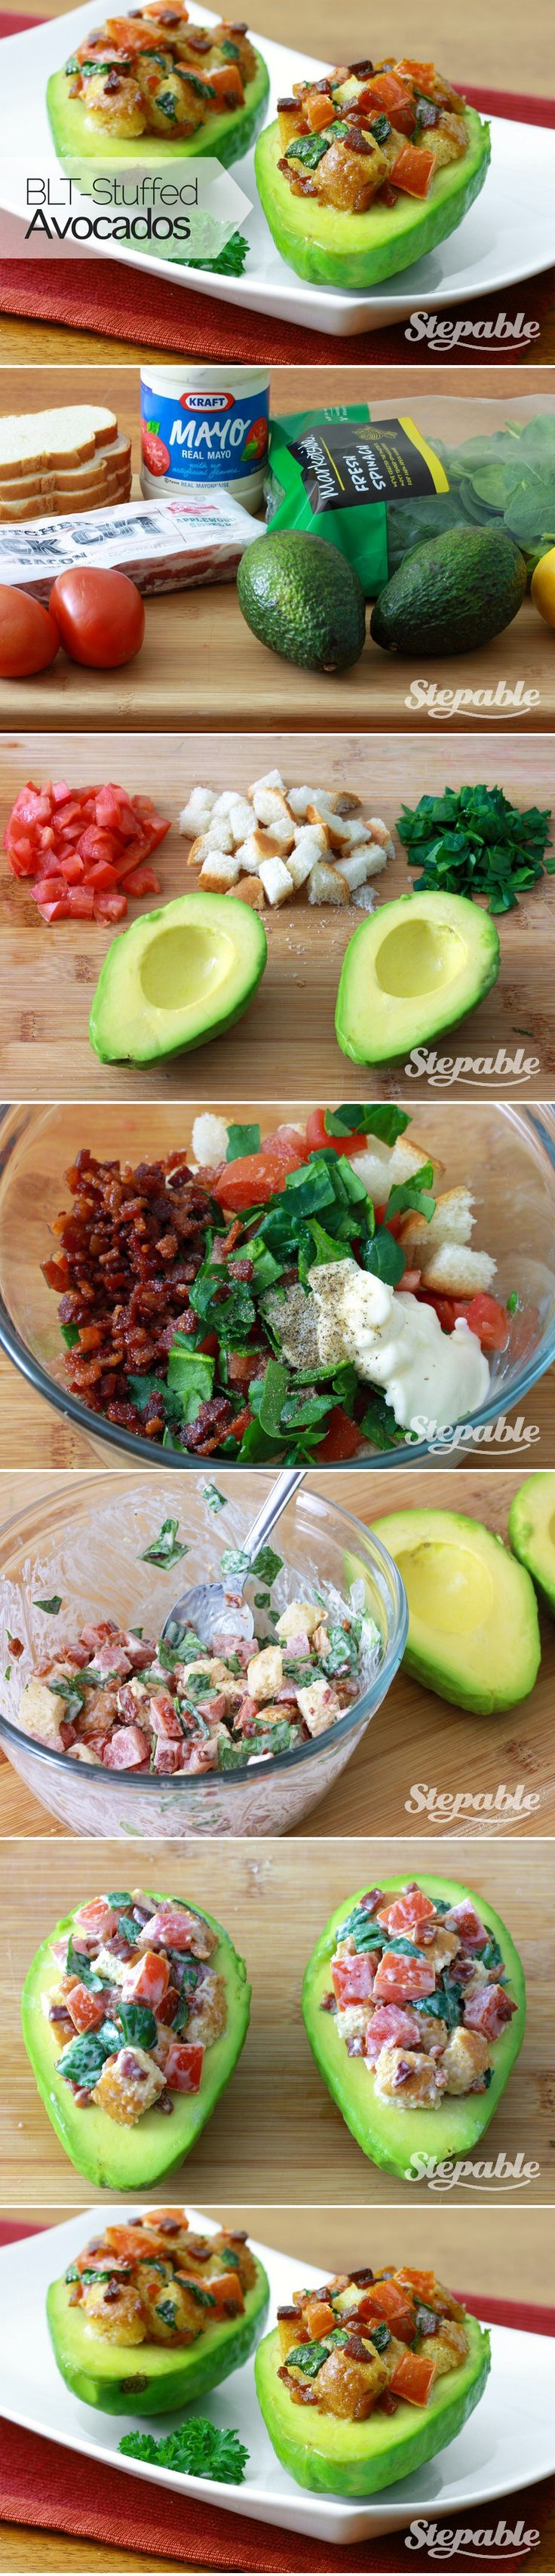 BLT-Stuffed Avocados @stepable #recipes